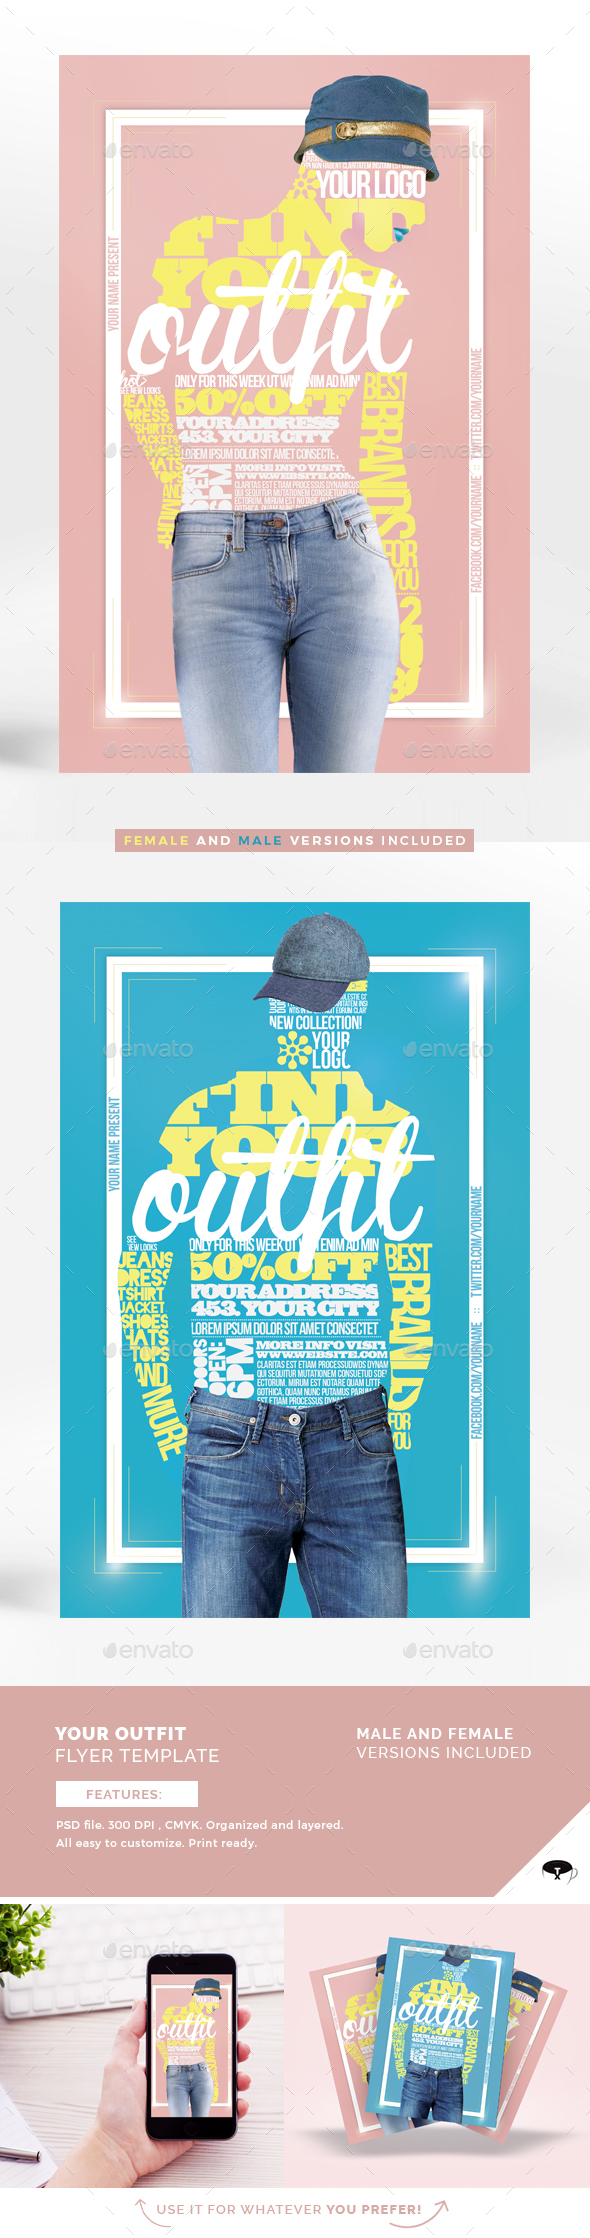 Your Outfit Flyer Template - Flyers Print Templates